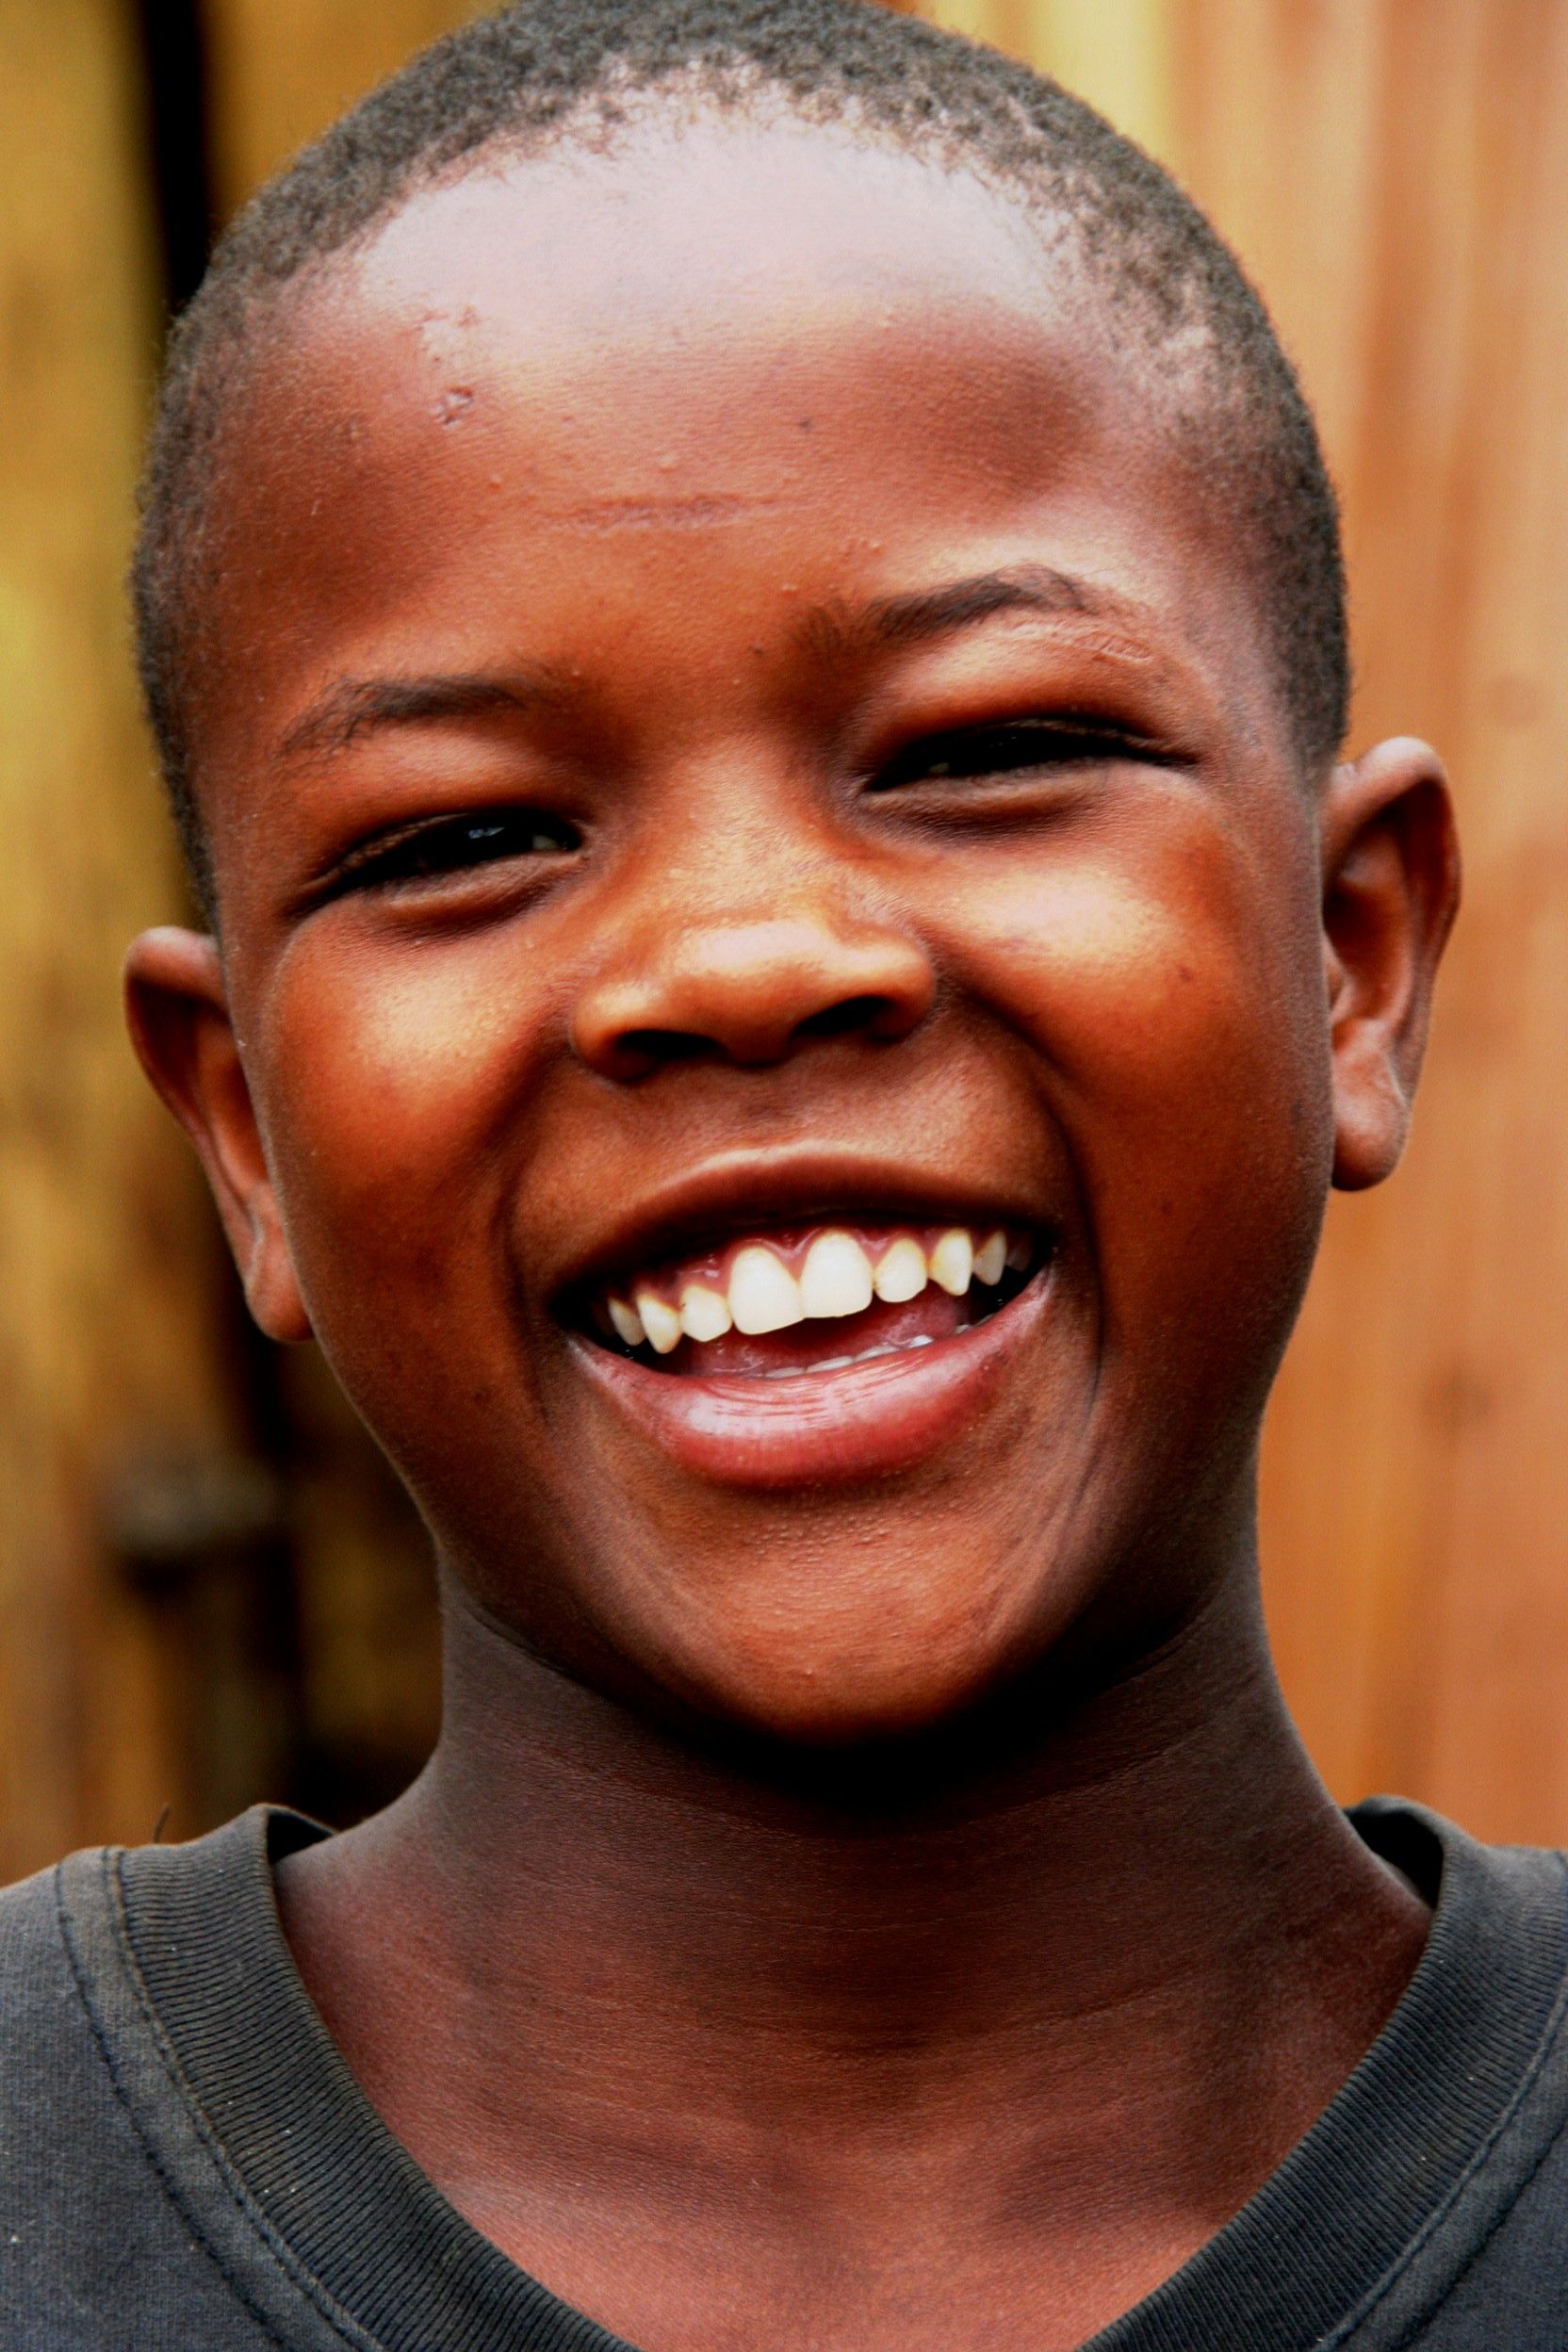 Although he's from the Orphanage Tanzania, this young boy still finds much to smile about. What a happy soul he must have!